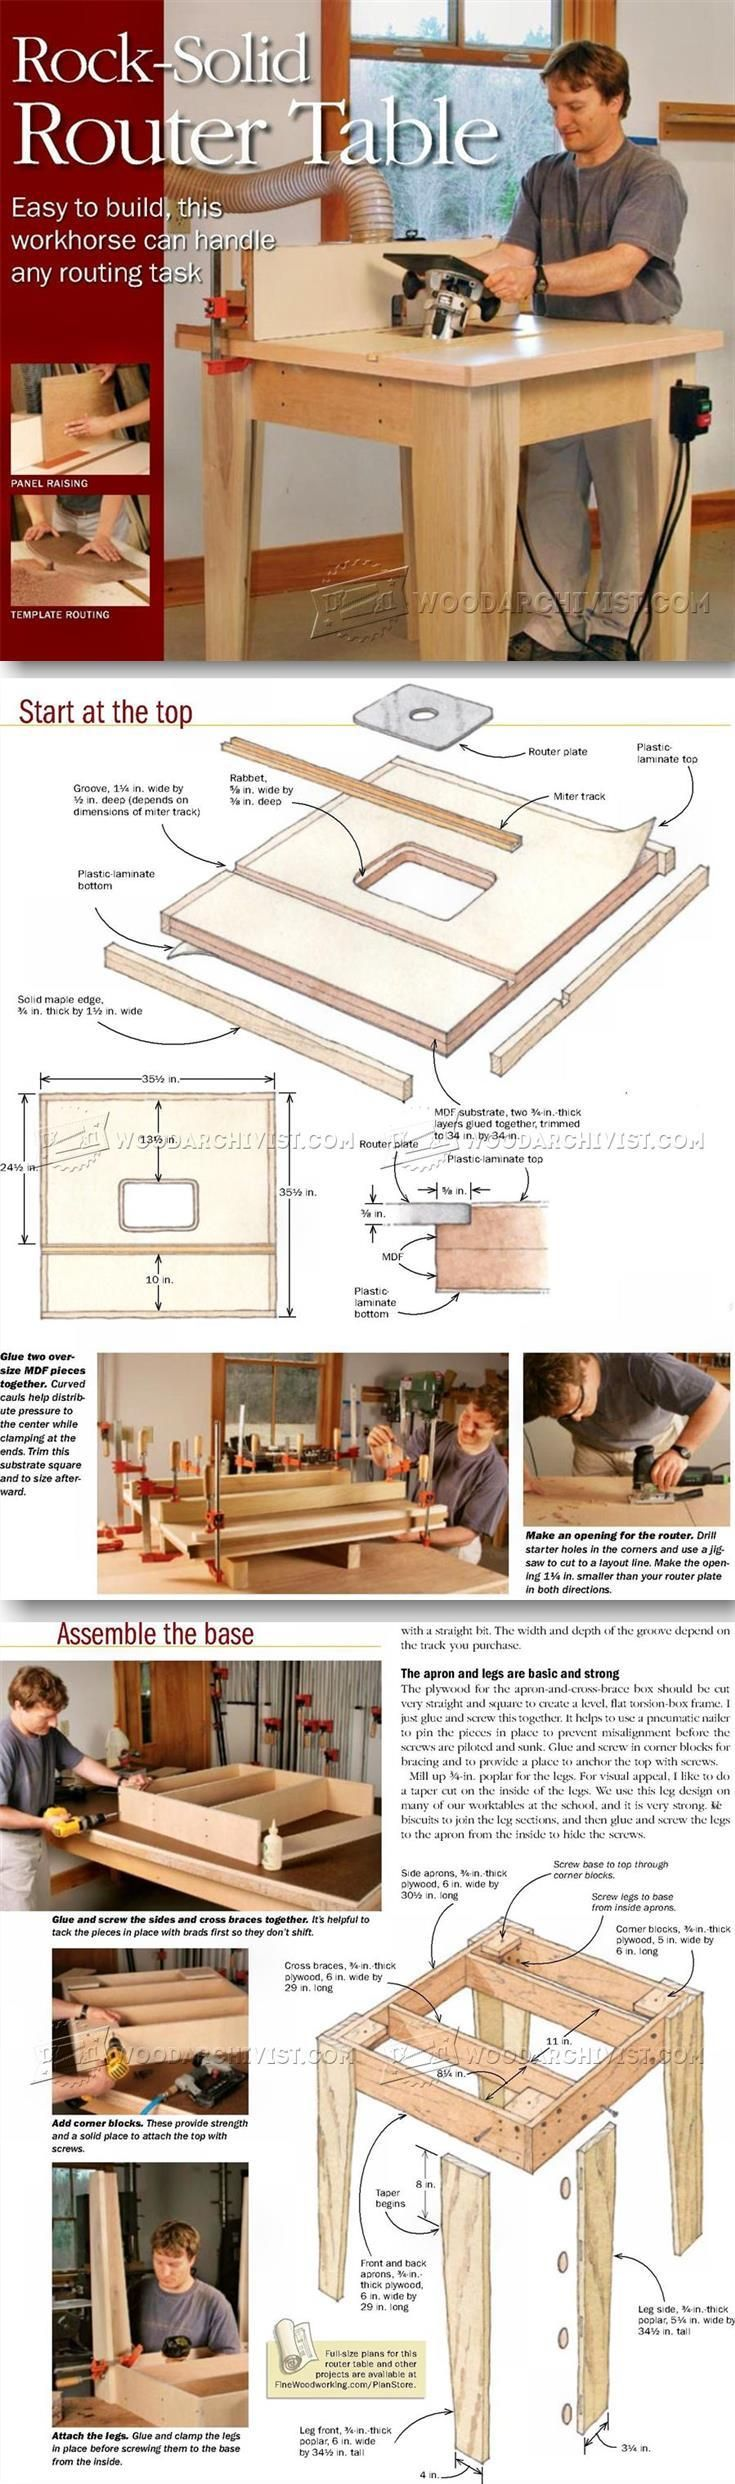 141 best router tables images on pinterest tools woodworking and build router table router tips jigs and fixtures woodwork woodworking woodworking plans woodworking projects greentooth Gallery